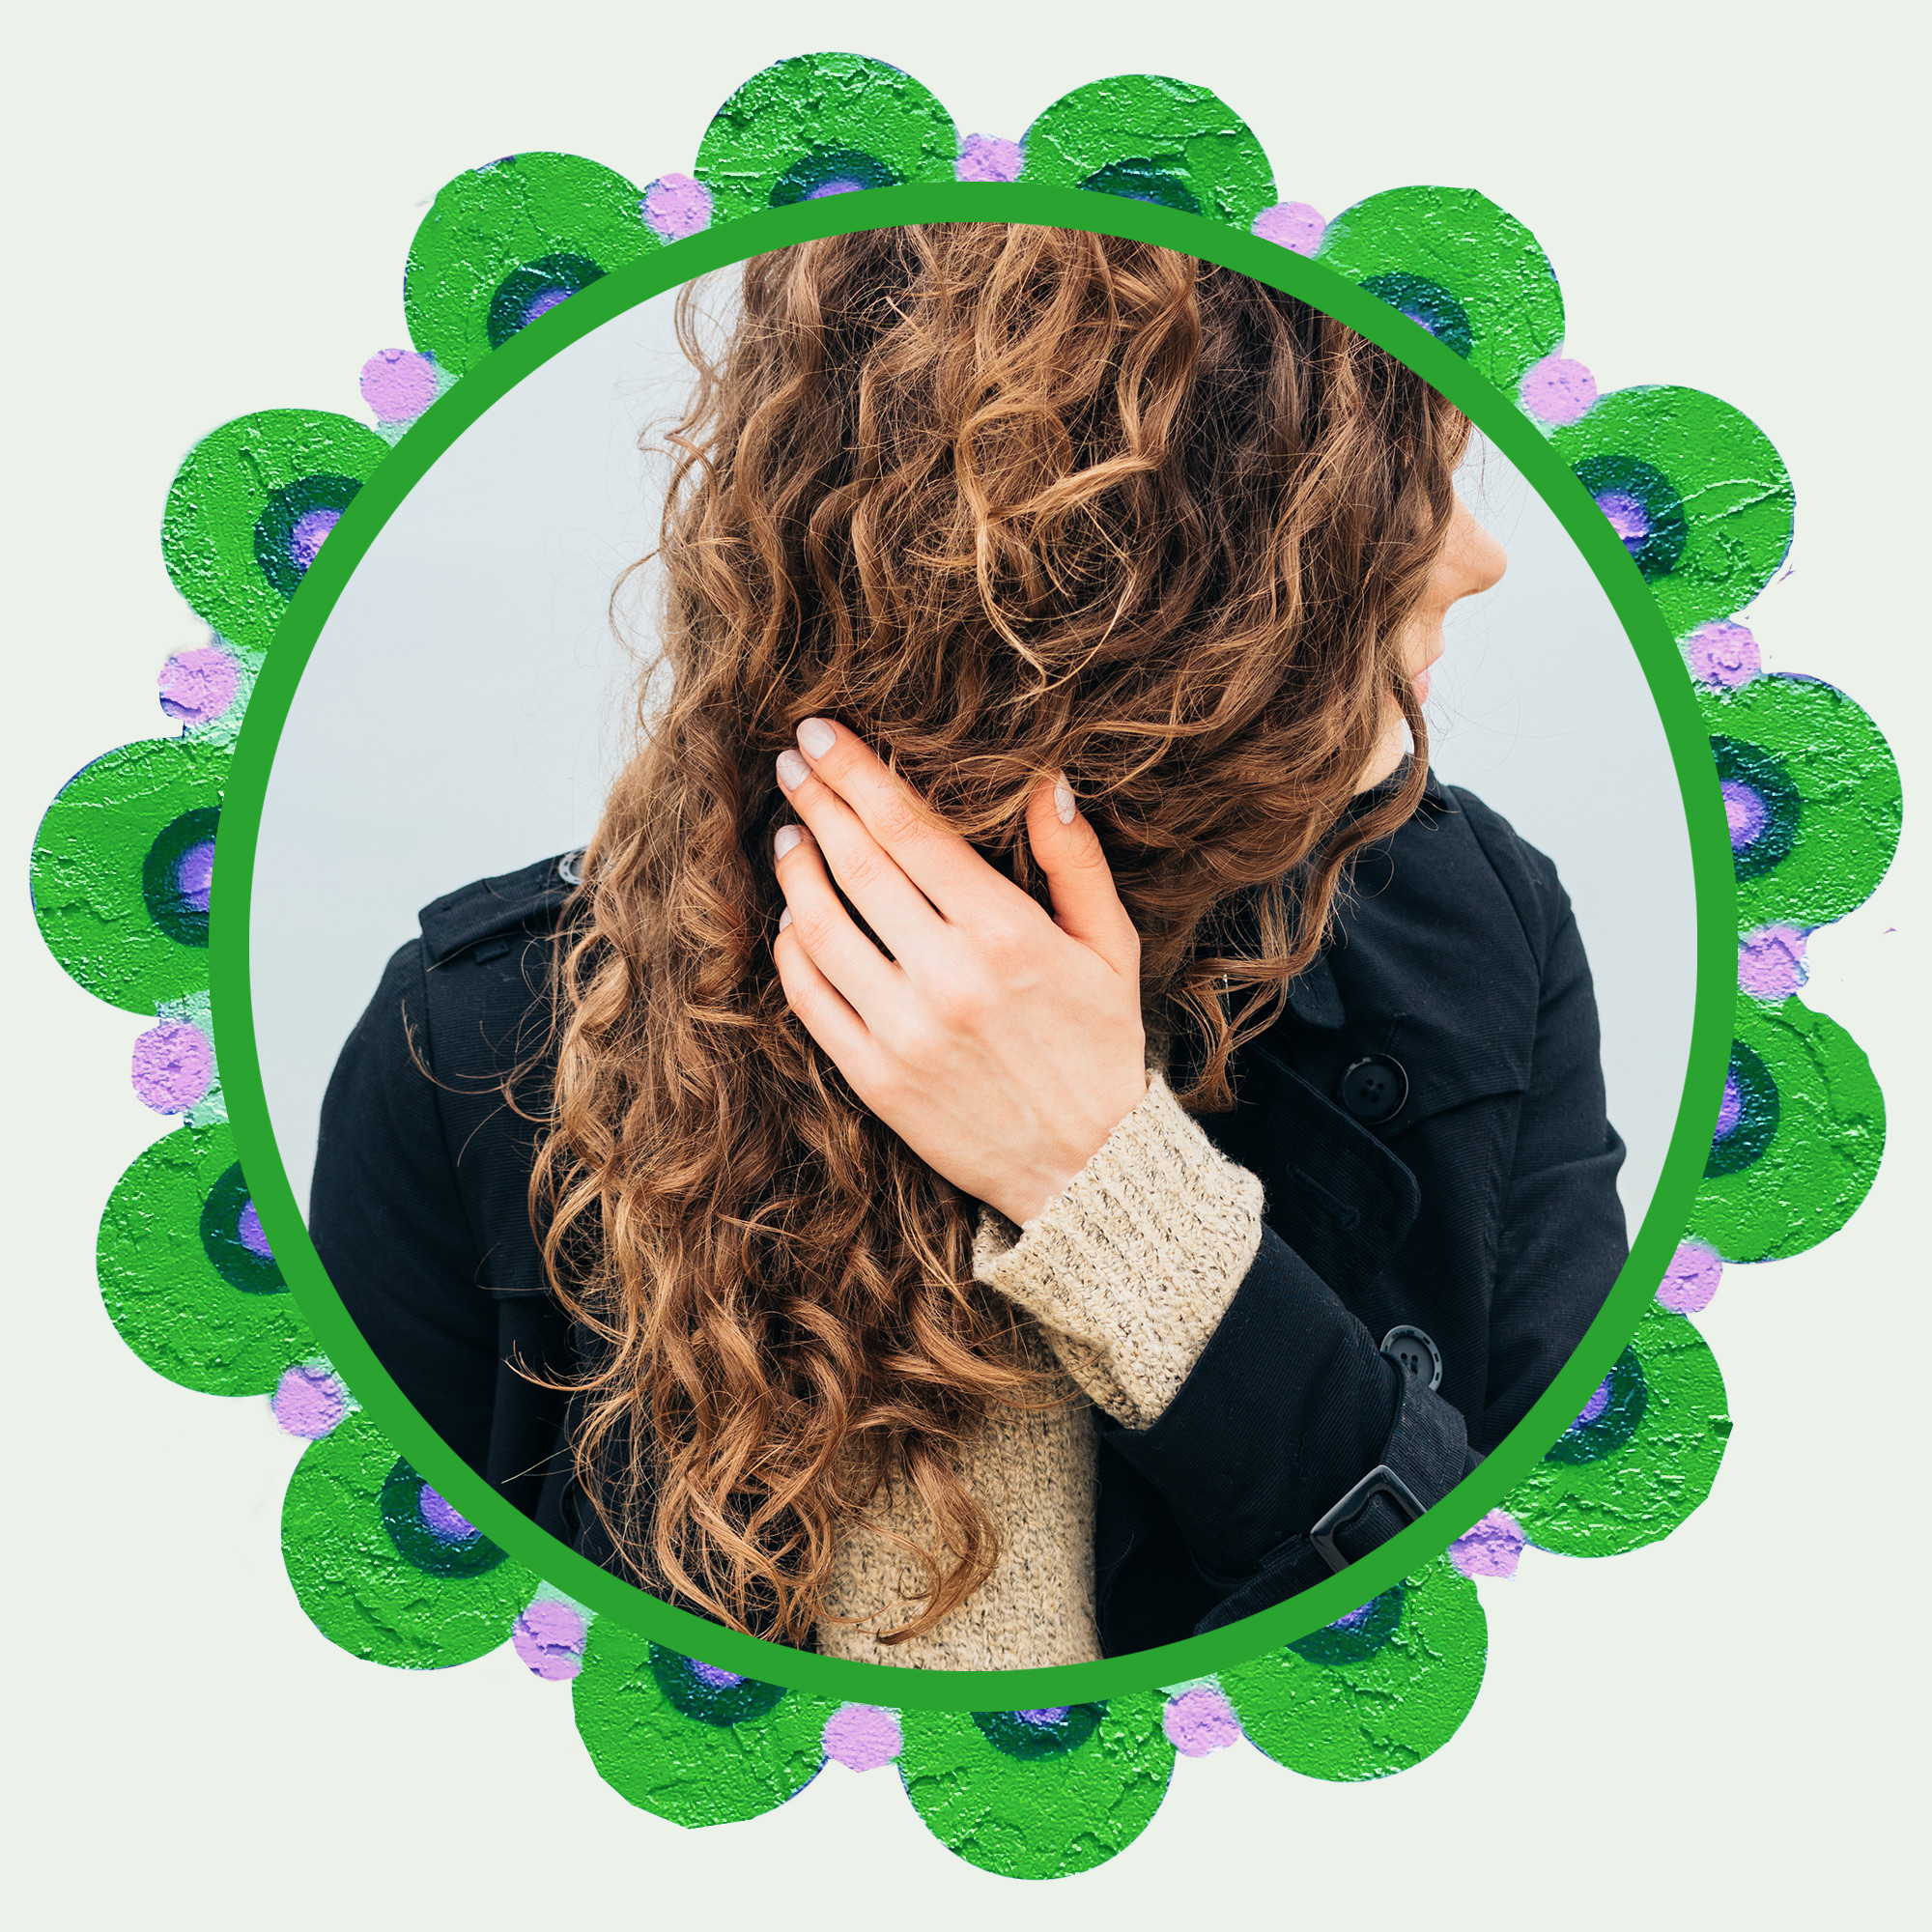 Curl Services - DevaCurl Cuts—$55+Dry Cuts for Curls—$45+We carry an array of products for curly hair health, including DevaCurl products. Come in and see what we can do for your curls!